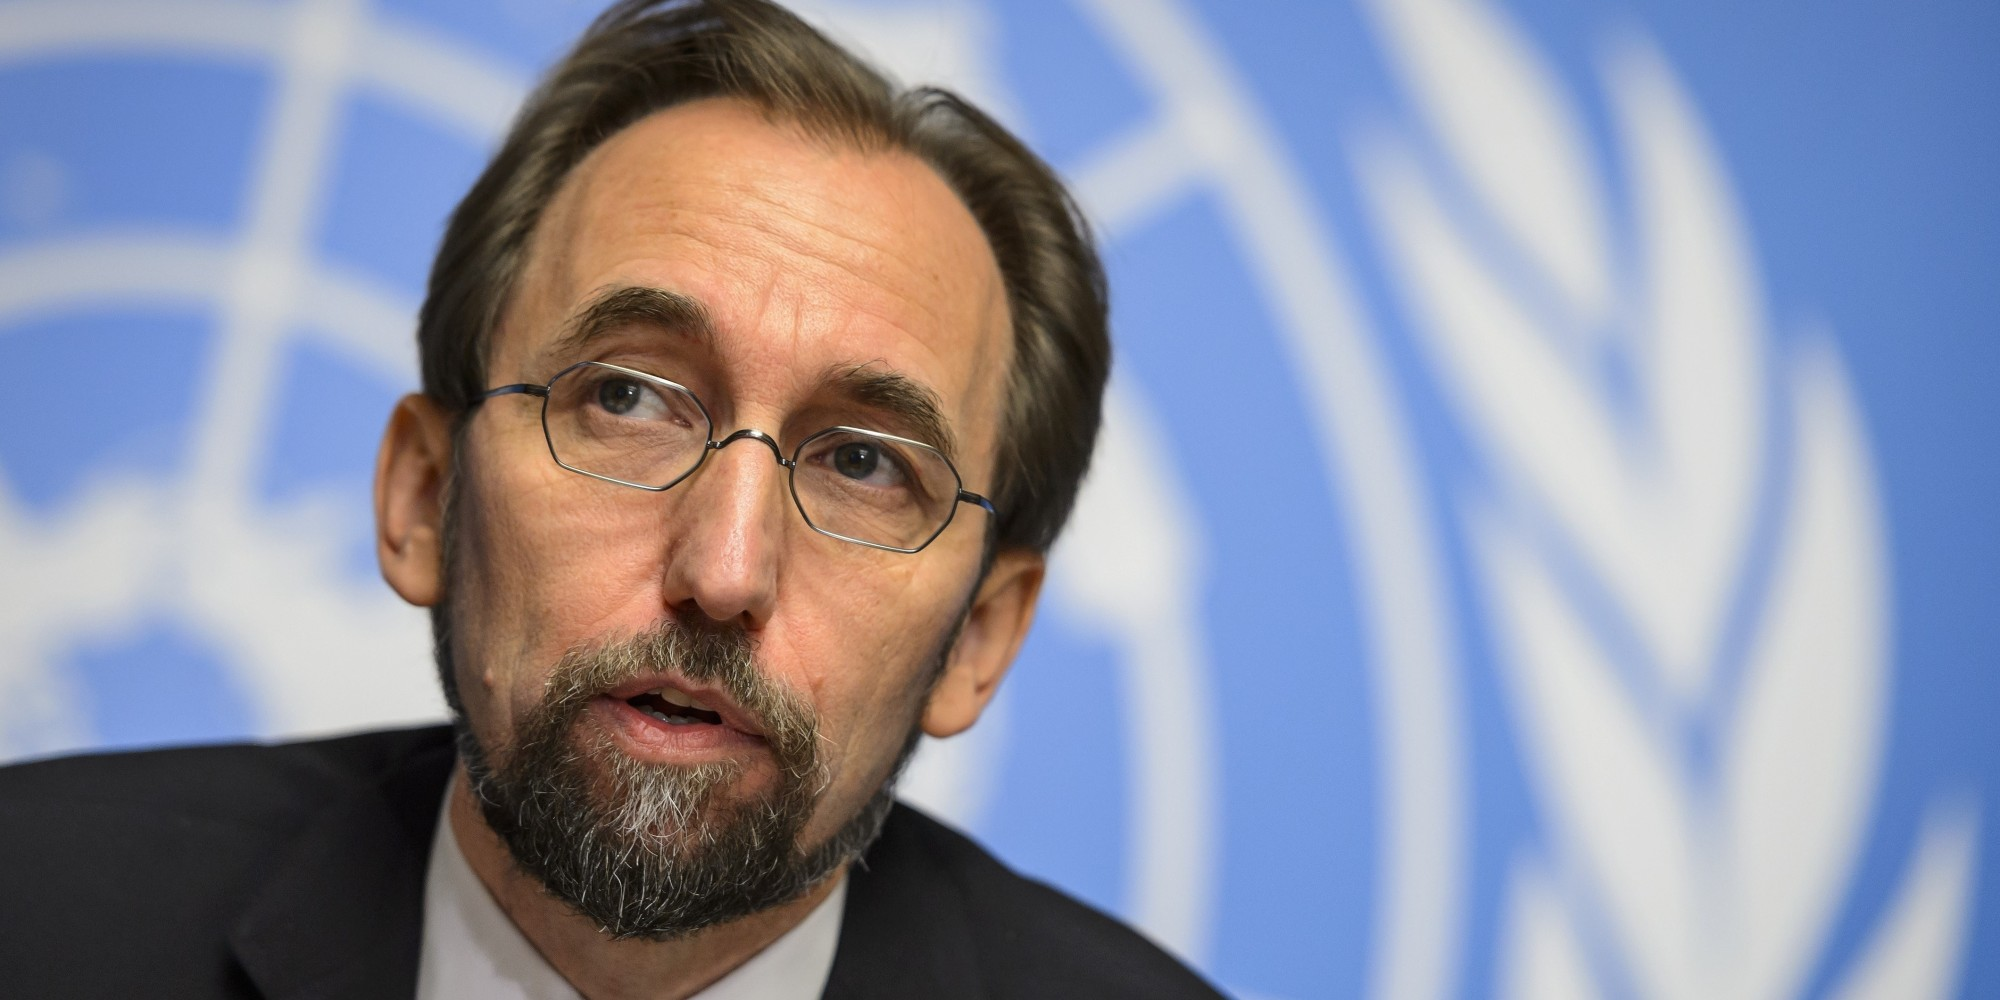 """Image from UNWatch.org    UN High Commissioner for Human Rights Zeid Ra'ad Al Hussein delivered the following speech at the Law Society in London.   26 June 2017  Earlier this month, Britain's Prime Minister called for human rights laws to be overturned if they were to """"get in the way"""" in the fight against terrorism. Specifically, Theresa May said there was a need """"to restrict the freedom and movement of terrorist suspects when we have enough evidence to know they are a threat, but not evidence to prosecute them in full in court."""" For an increasingly anxious public, shaken by the recent and dreadful terrorist attacks, her remarks no doubt reflected real anger and frustration, but they also seemed intended to strike a chord with a certain sector of the electorate, and it is this expectation that truly worries me.   British Government officials would probably claim the comments should be understood in the context of a tough electoral campaign, and would presumably try and reassure us quietly that the government's support for human rights remains steadfast and unchallengeable.  Whatever the intention behind her remarks, they were highly regrettable, a gift from a major Western leader to every authoritarian figure around the world who shamelessly violates human rights under the pretext of fighting terrorism. And it is not just the leaders.  A few days ago, citing Prime Minister May, a former Sri Lankan rear admiral delivered a petition to the President of the Human Rights Council. He demanded action be taken against my Office for """"forcing"""" Sri Lanka to undertake constitutional reforms, and for exerting pressure on them to create a hybrid court to try perpetrators of war crimes and crimes against humanity – when in reality, he claimed, all they had engaged in was fighting terrorism.  My first question: Why is international human rights law such an easy target? Why is it so misunderstood, so reviled by some, feared by others, spurned, attacked?  My second: If the Prime Mi"""